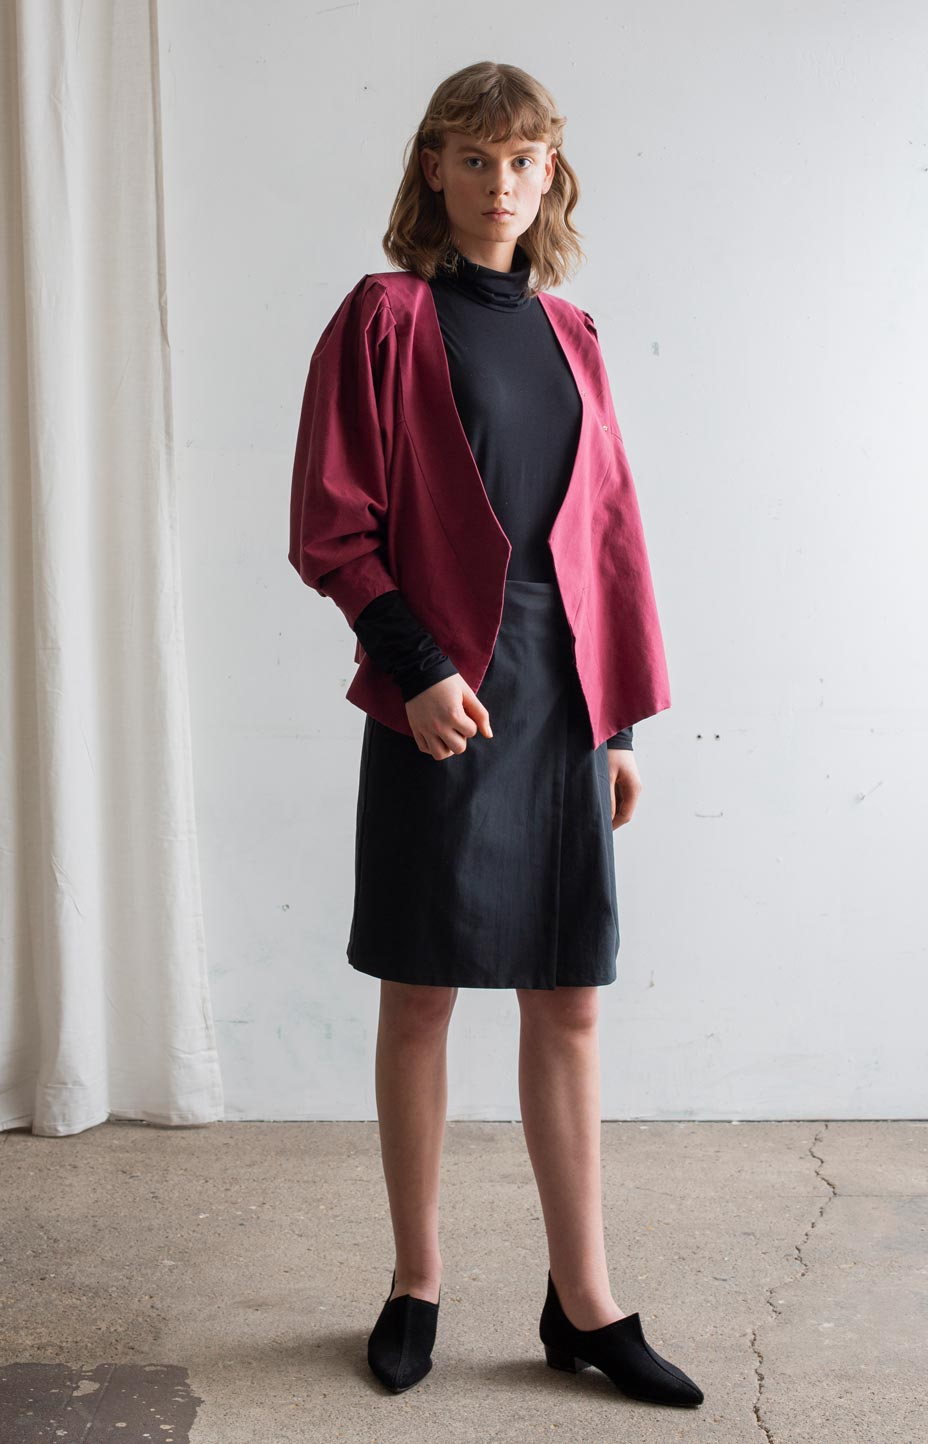 AW20 Feel blouse cabernet red - Tops - TAUKO - TAUKODESIGN